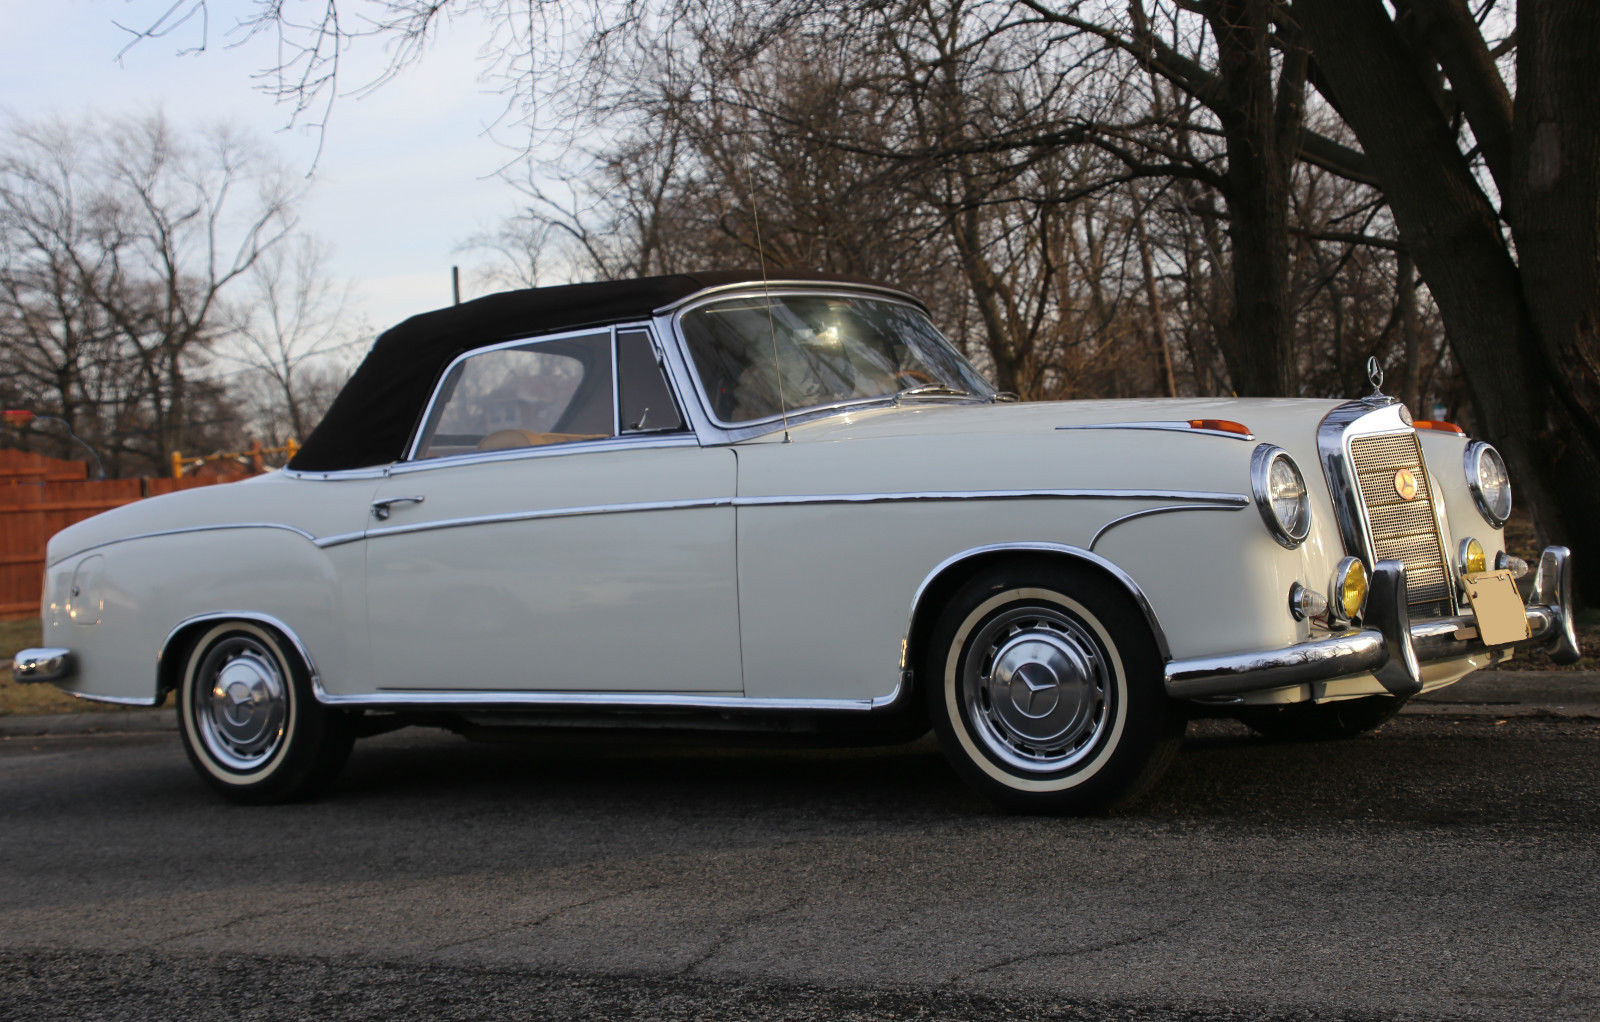 1959 mercedes benz 220s cabriolet convertible for sale ForMercedes Benz Cabriolet For Sale